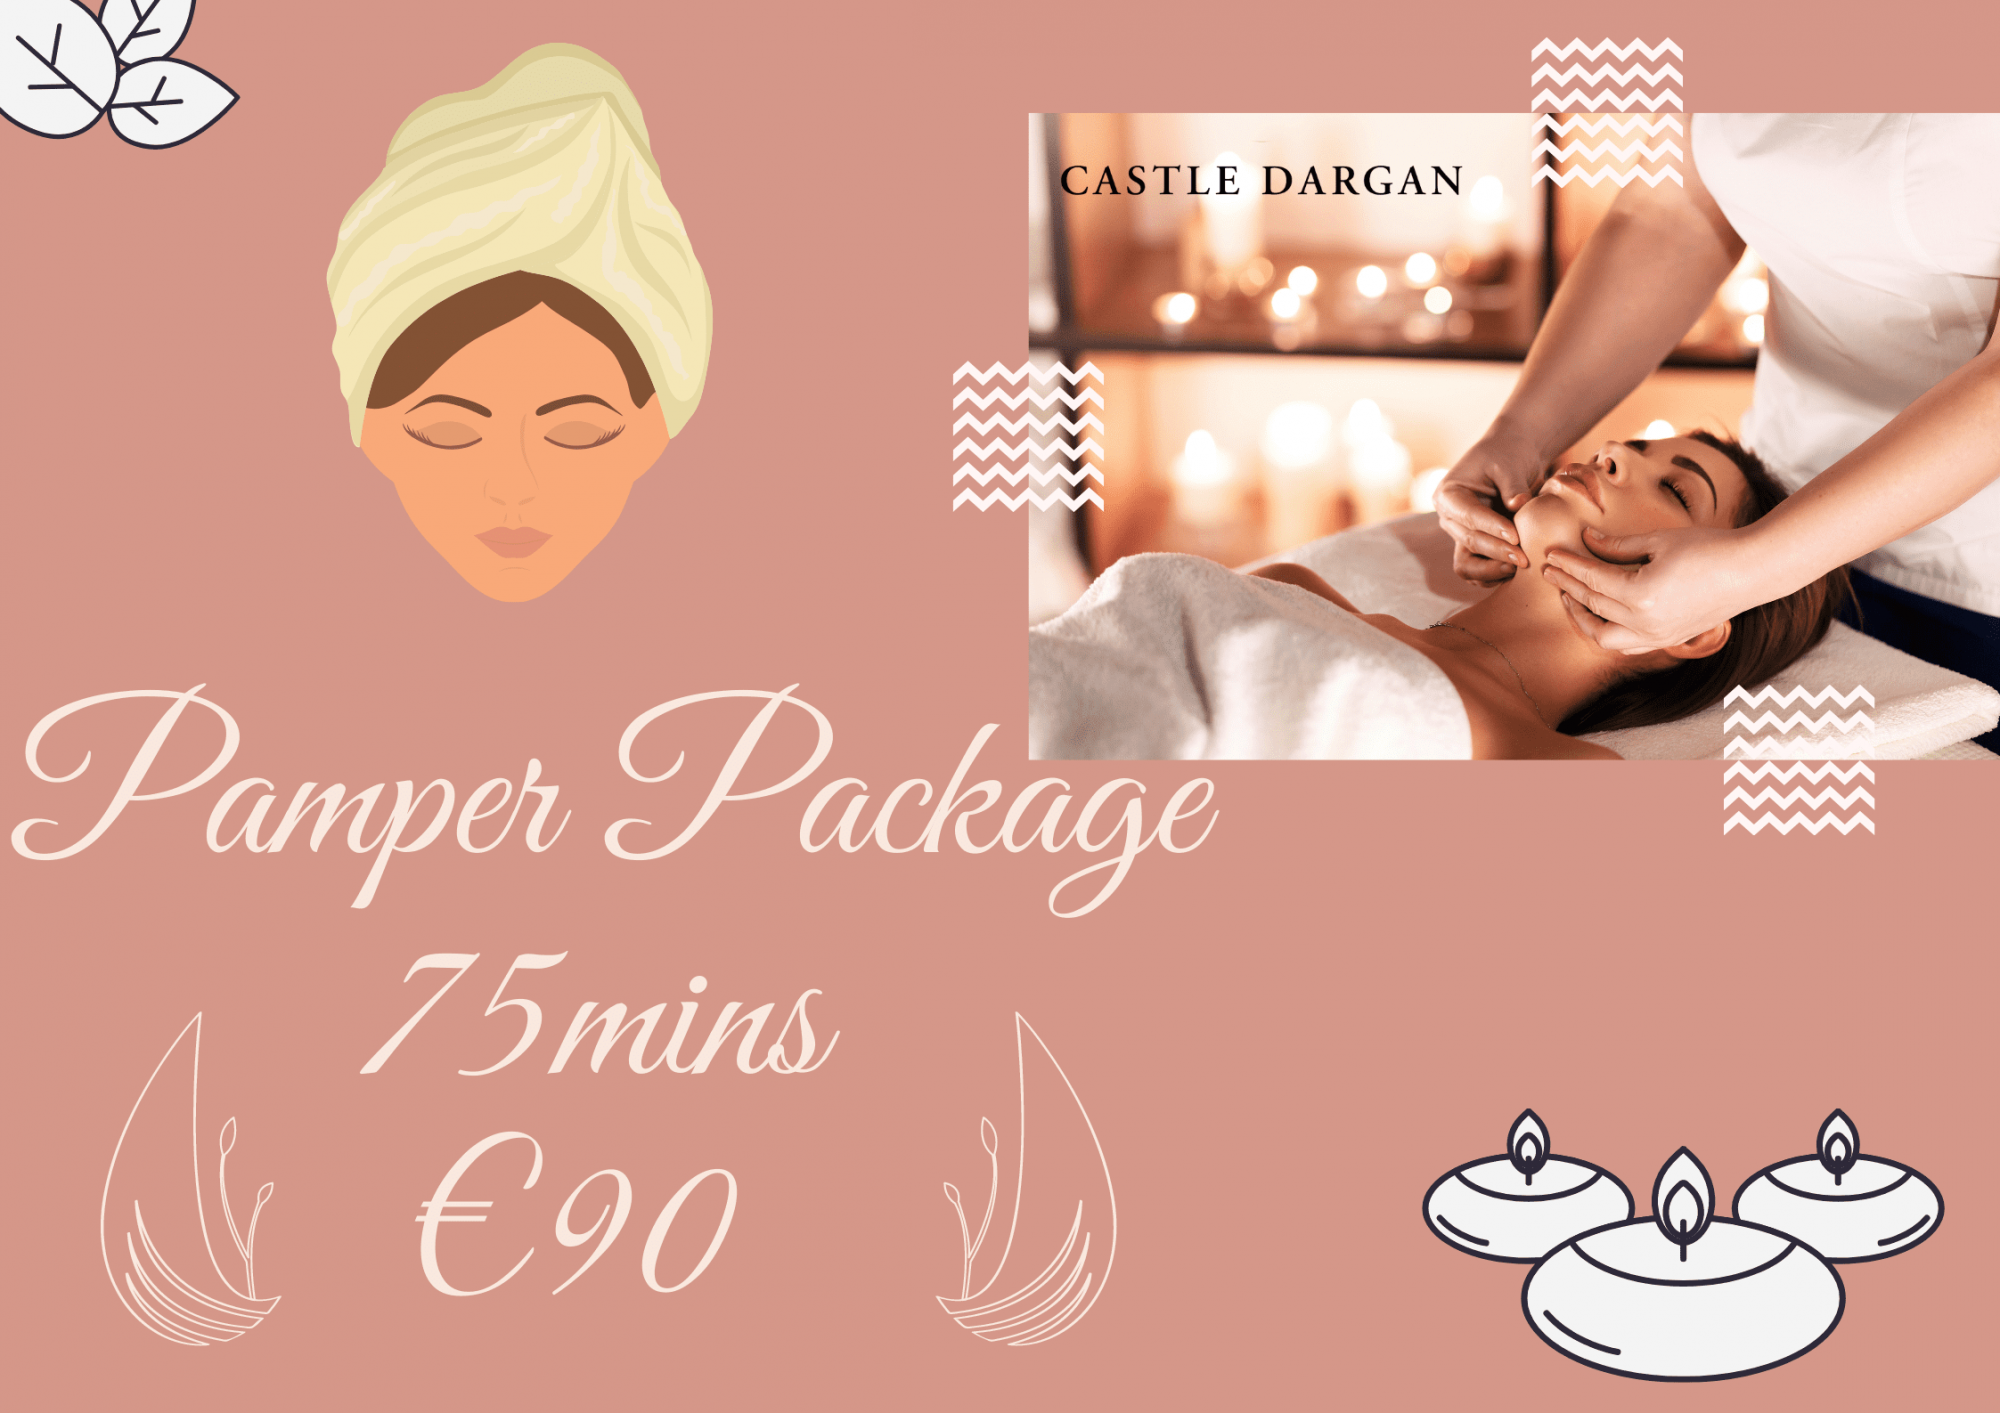 pamper package 1